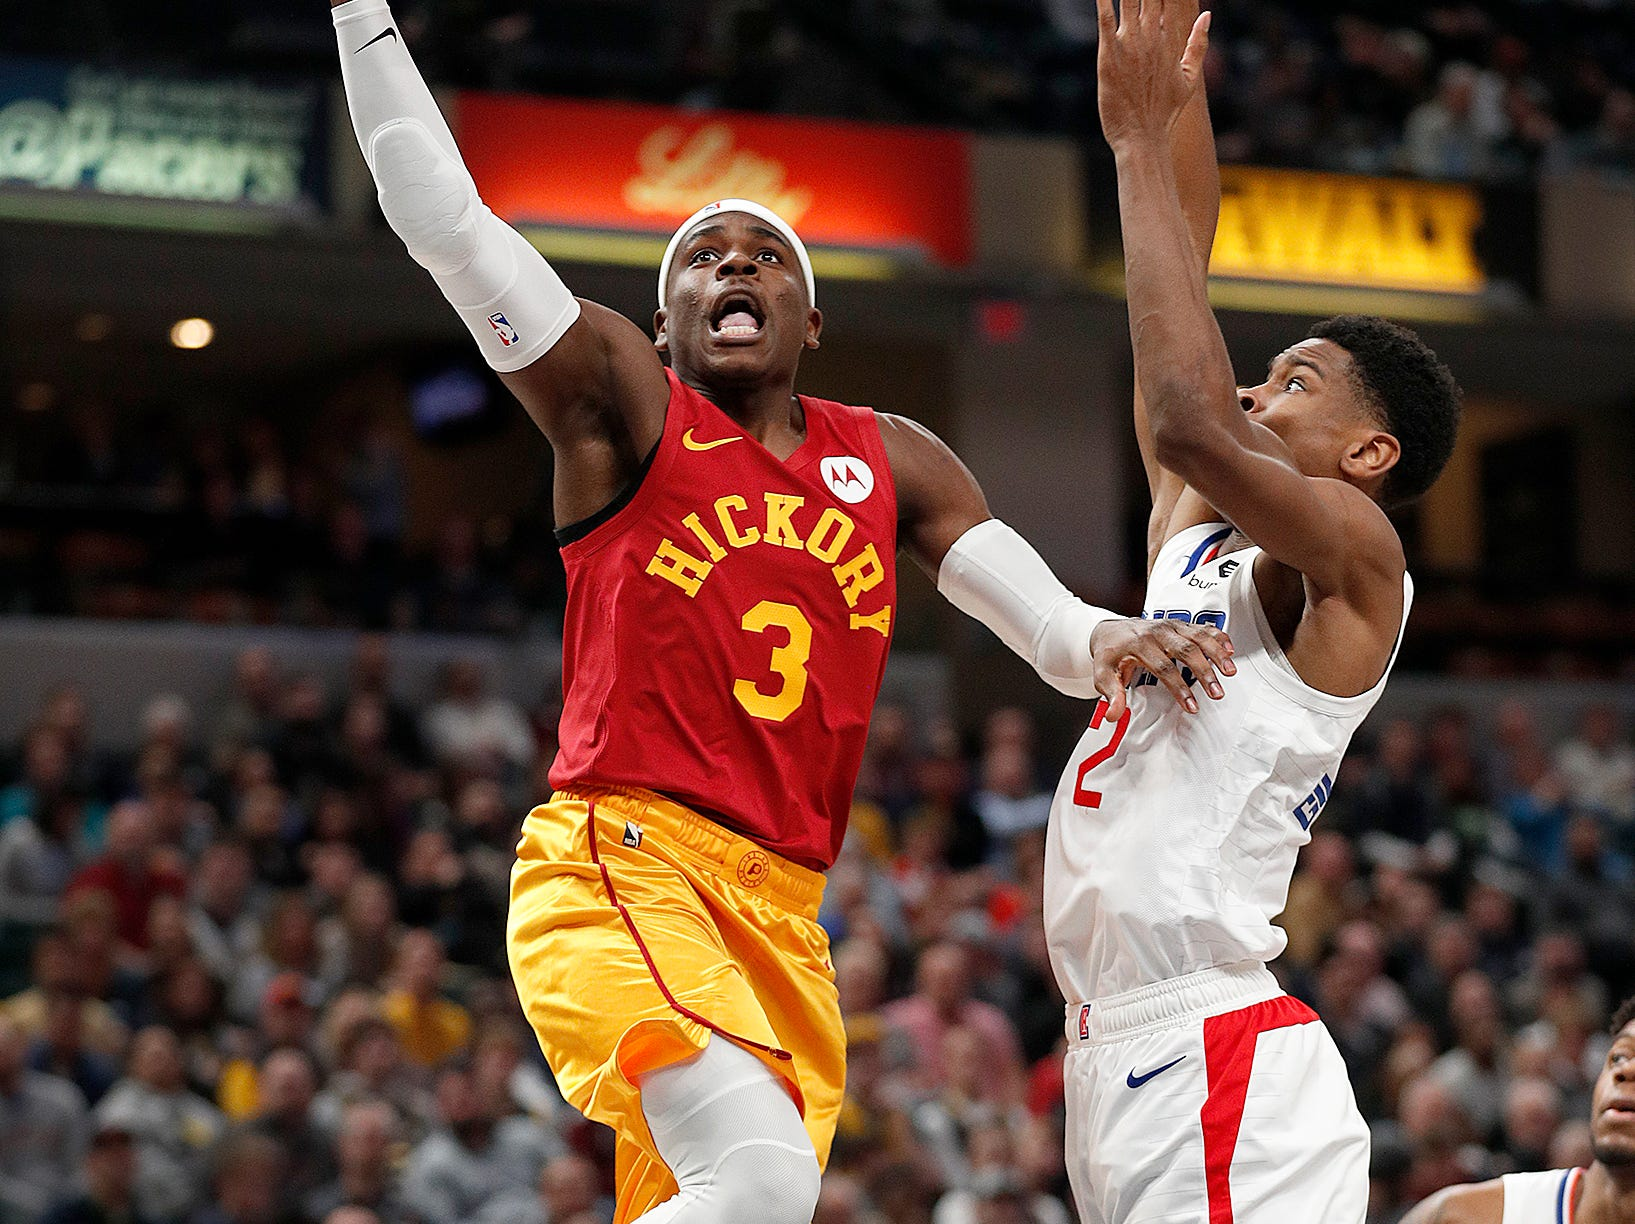 Indiana Pacers guard Aaron Holiday (3) drives on LA Clippers guard Shai Gilgeous-Alexander (2) in the second half of their game at Bankers Life Fieldhouse on Thursday, Feb. 7, 2019.